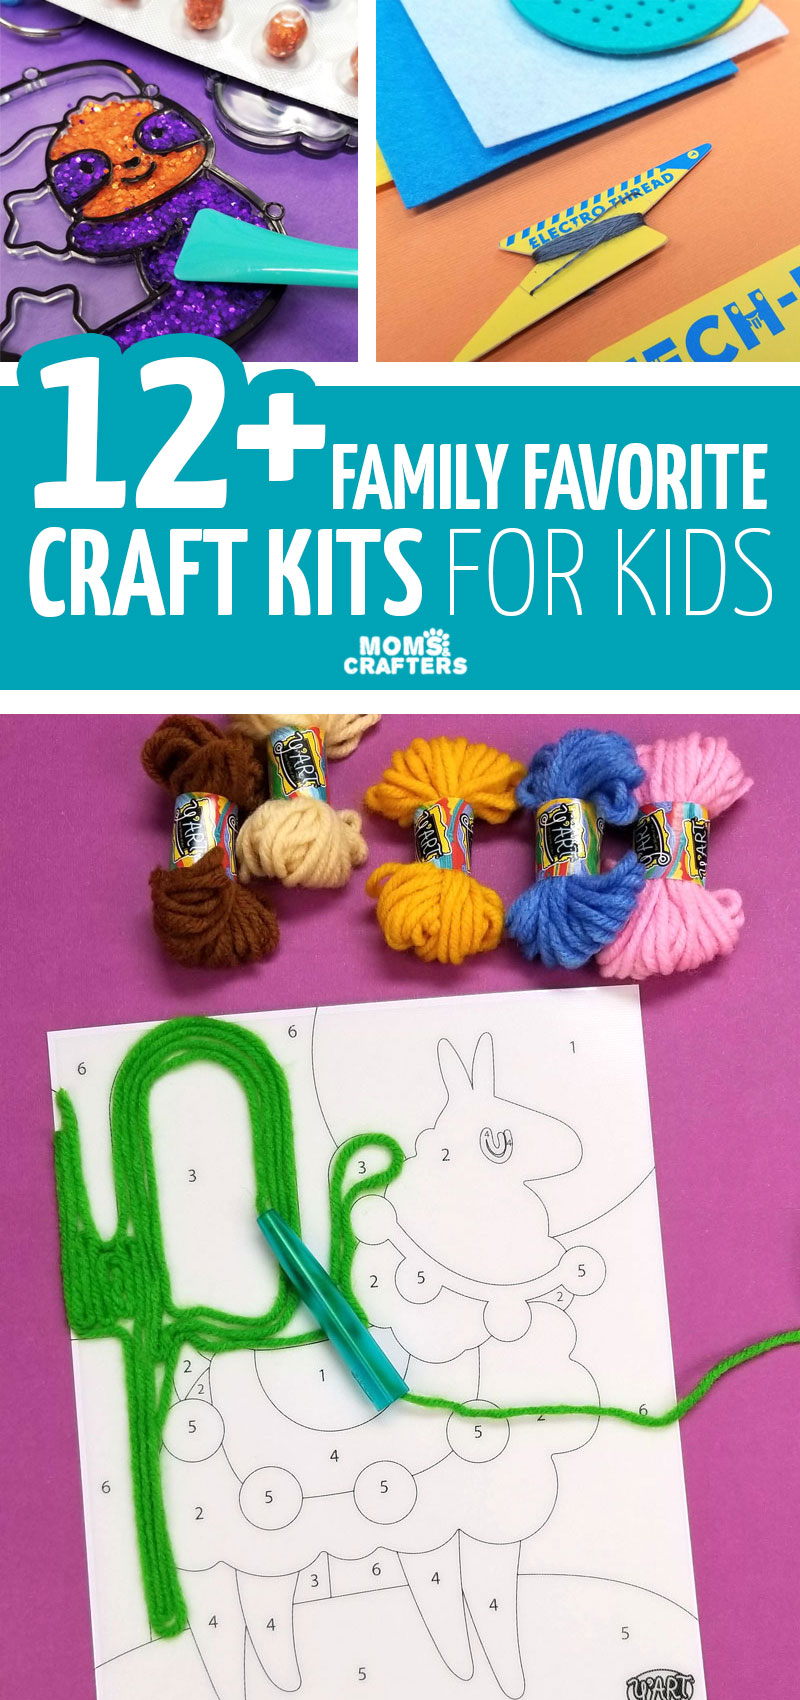 Click for some cool craft making kids for kids of all ages! These arts and crafts for kids all come in kit form so you can make them easily even if youre a beginner!